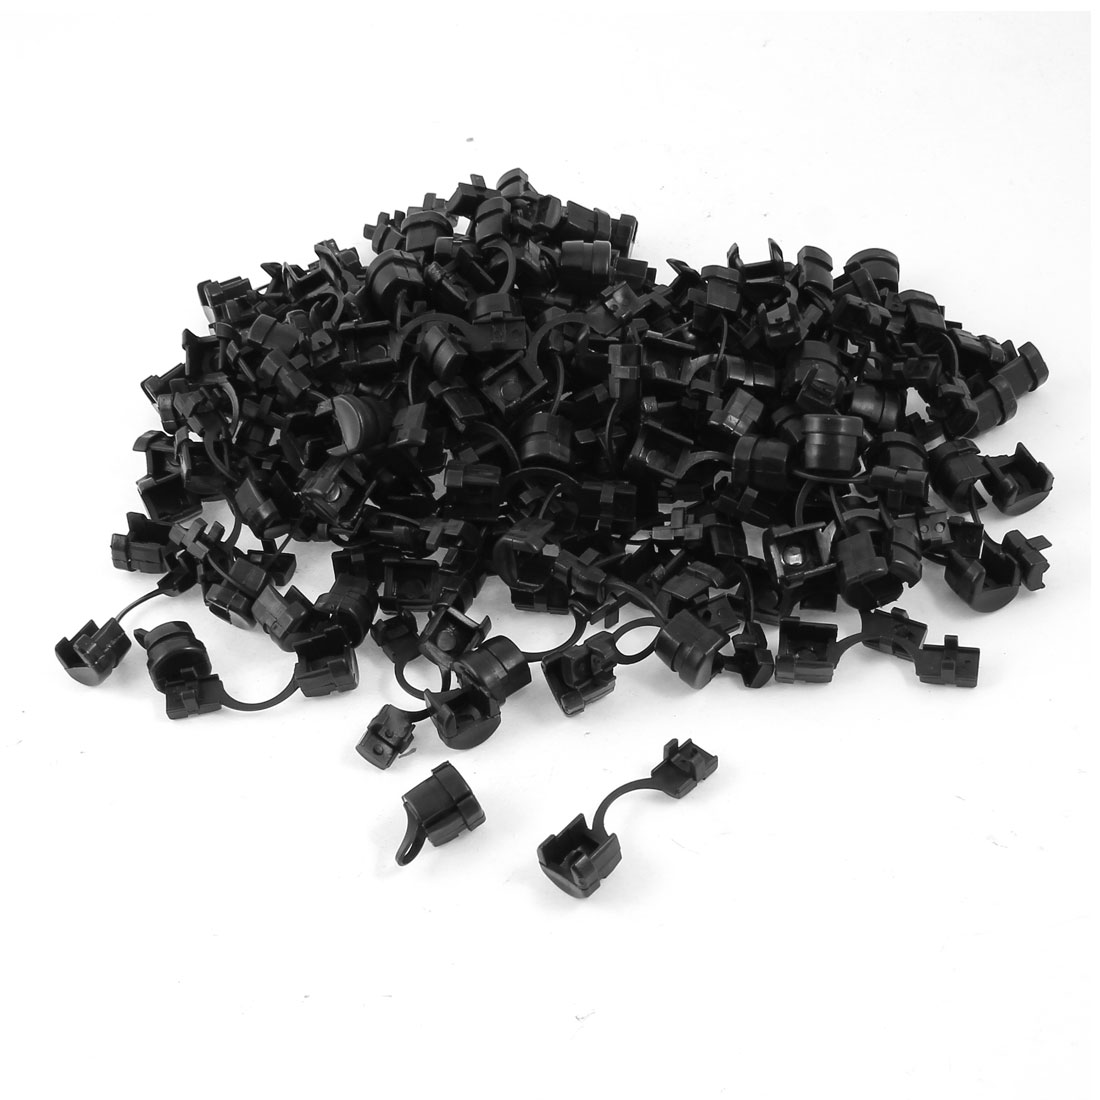 200 Pcs Black Nylon Wires Protectors Strain Relief Bushing for 5mm Width Flat Cables